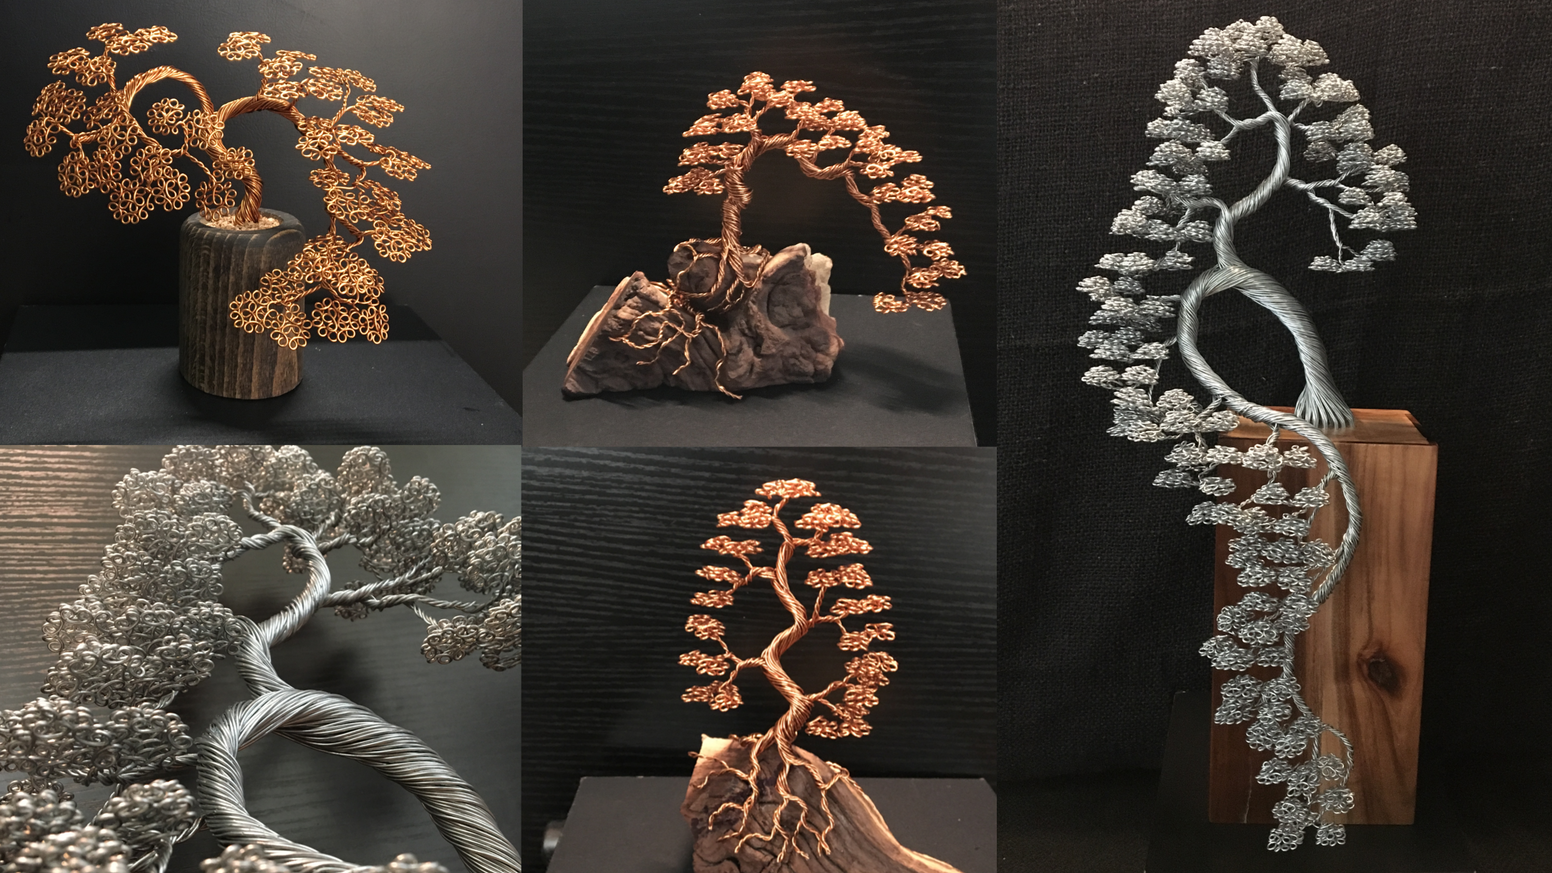 Hand made sculptures using strands of wire